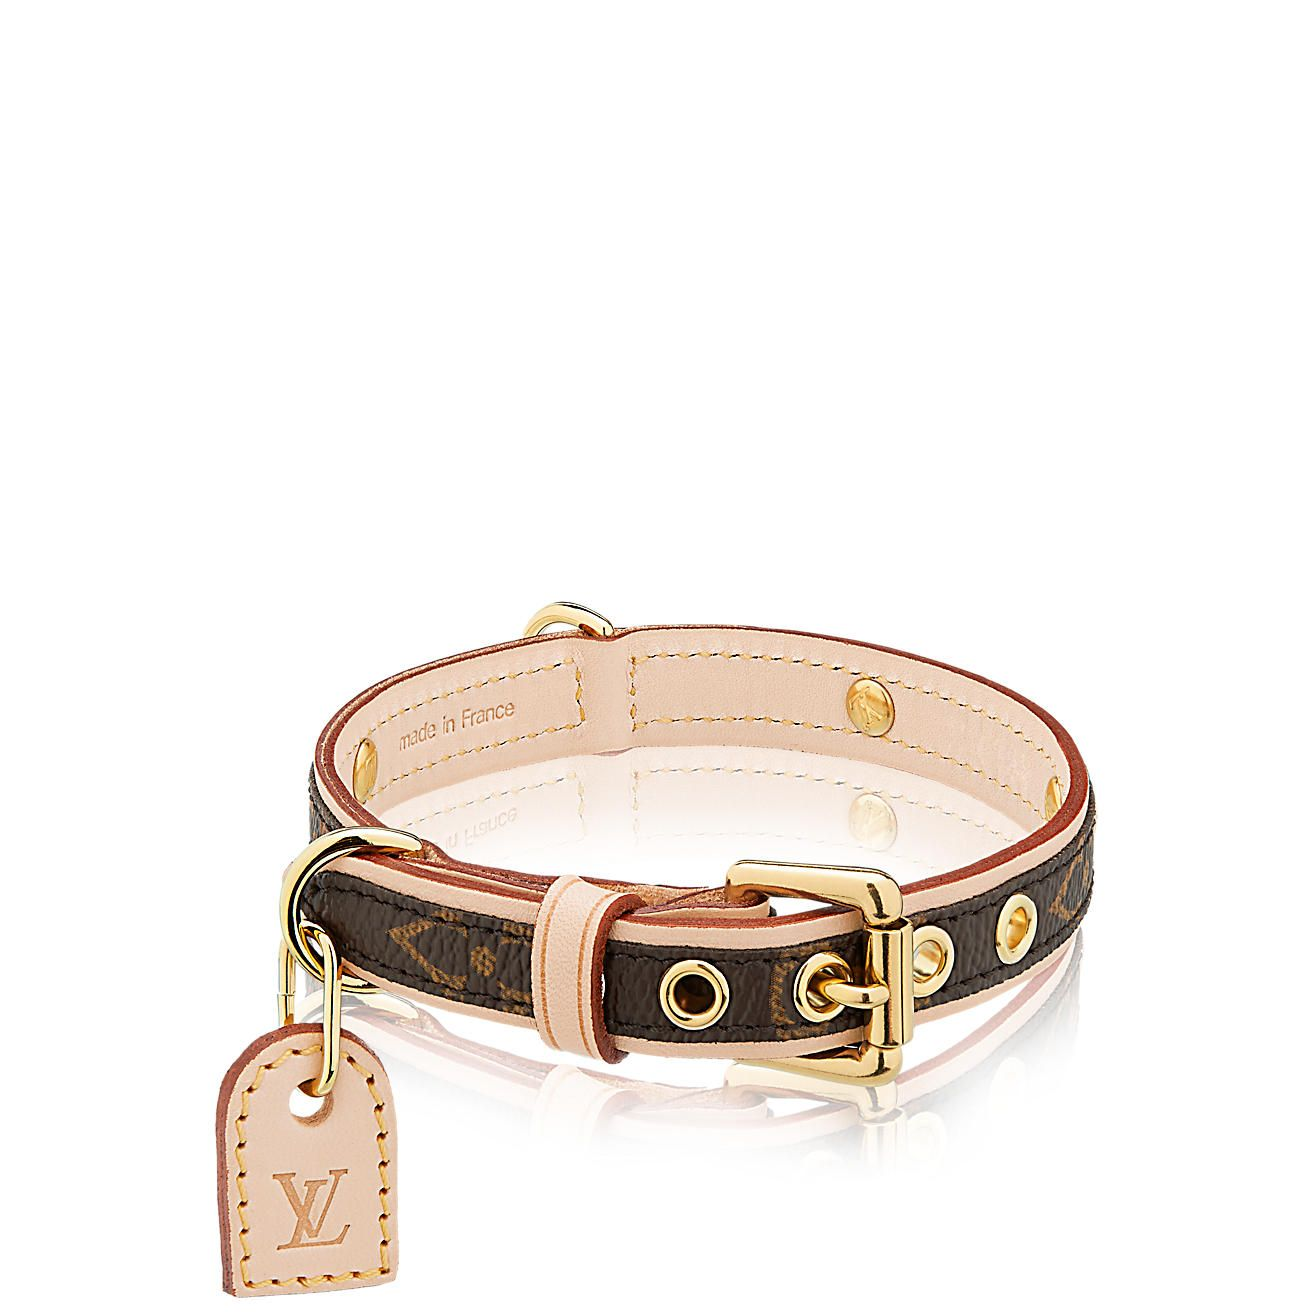 5ce03795d00d Baxter Dog Collar PM Monogram in WOMEN s TRAVEL collections by Louis Vuitton